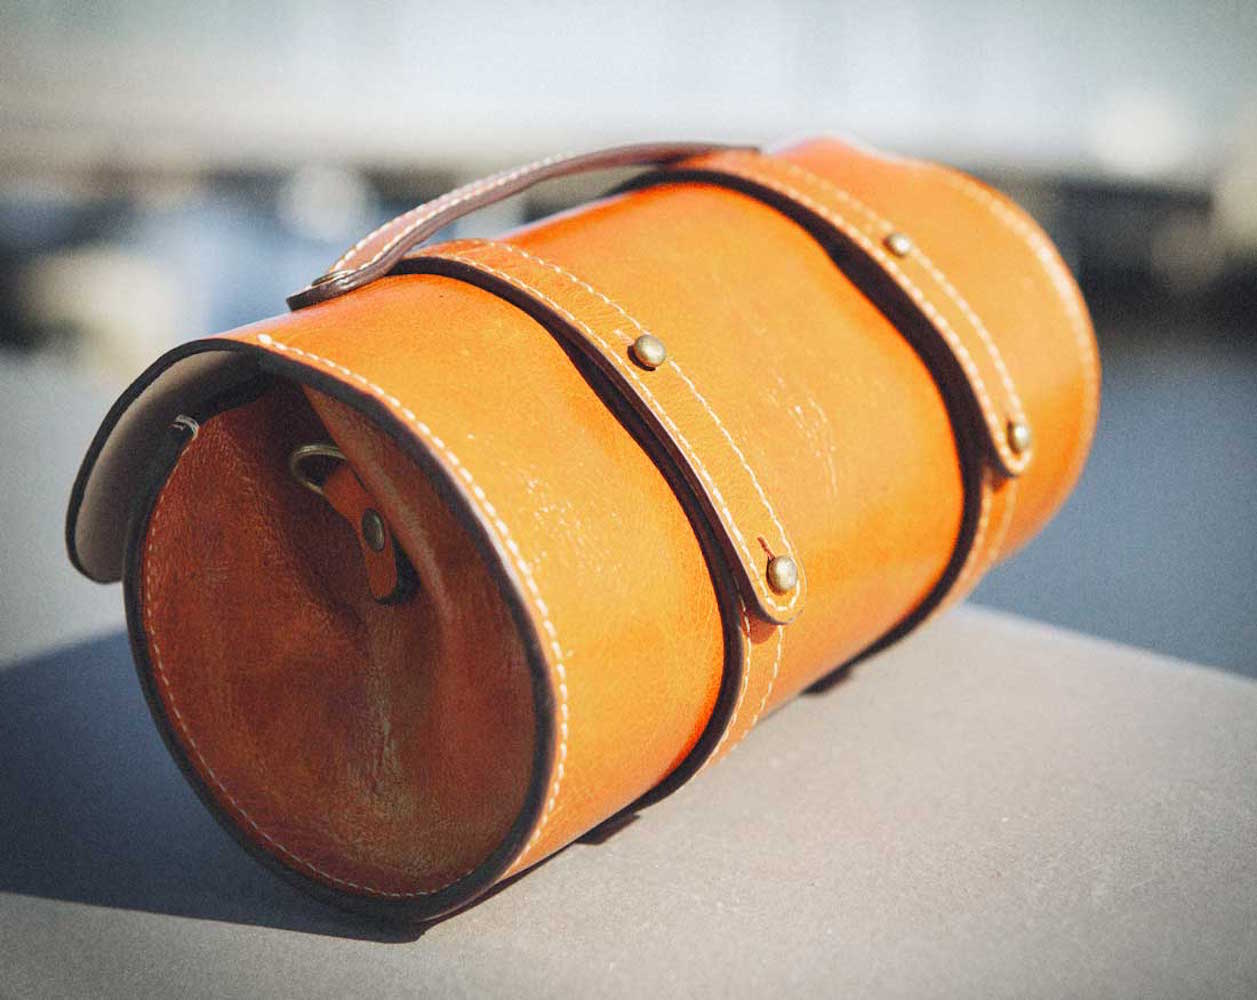 small-barrel-the-cylindrical-wonder-04